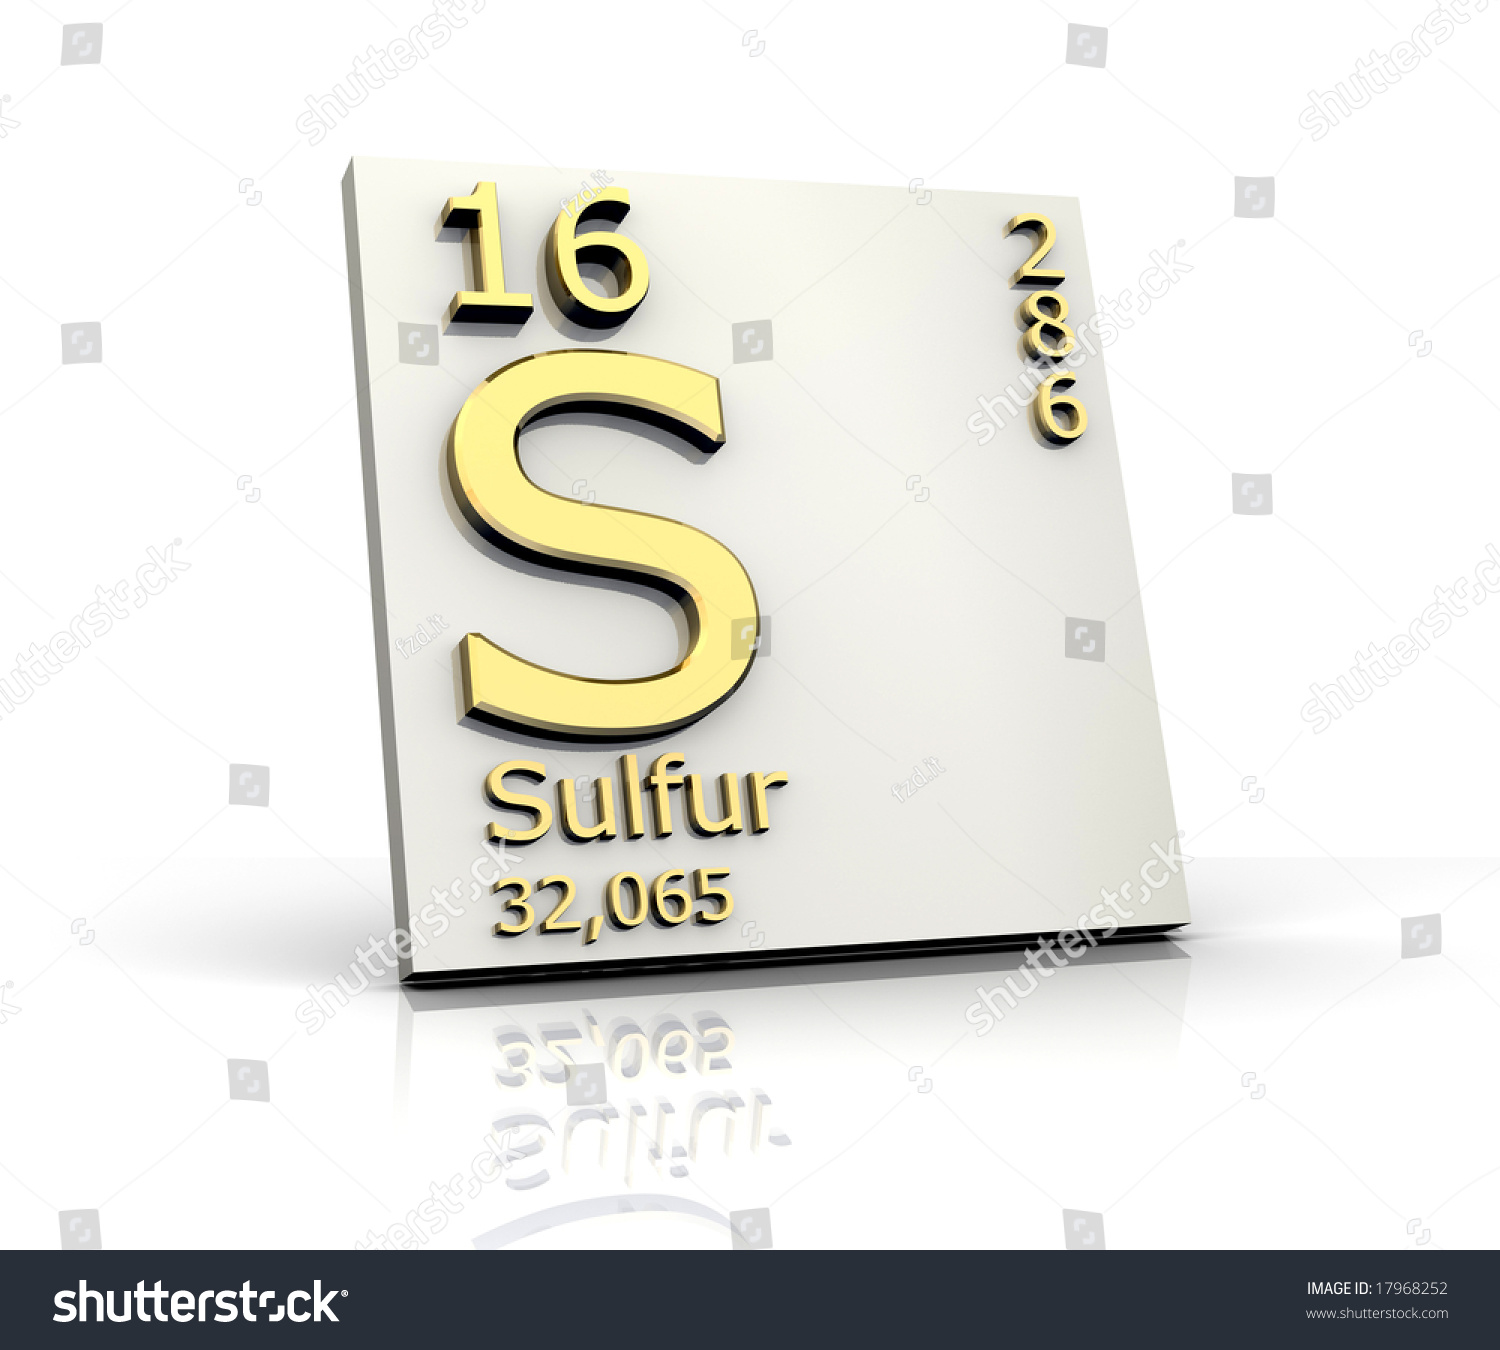 Sulfur form periodic table elements stock illustration 17968252 sulfur form periodic table of elements gamestrikefo Image collections